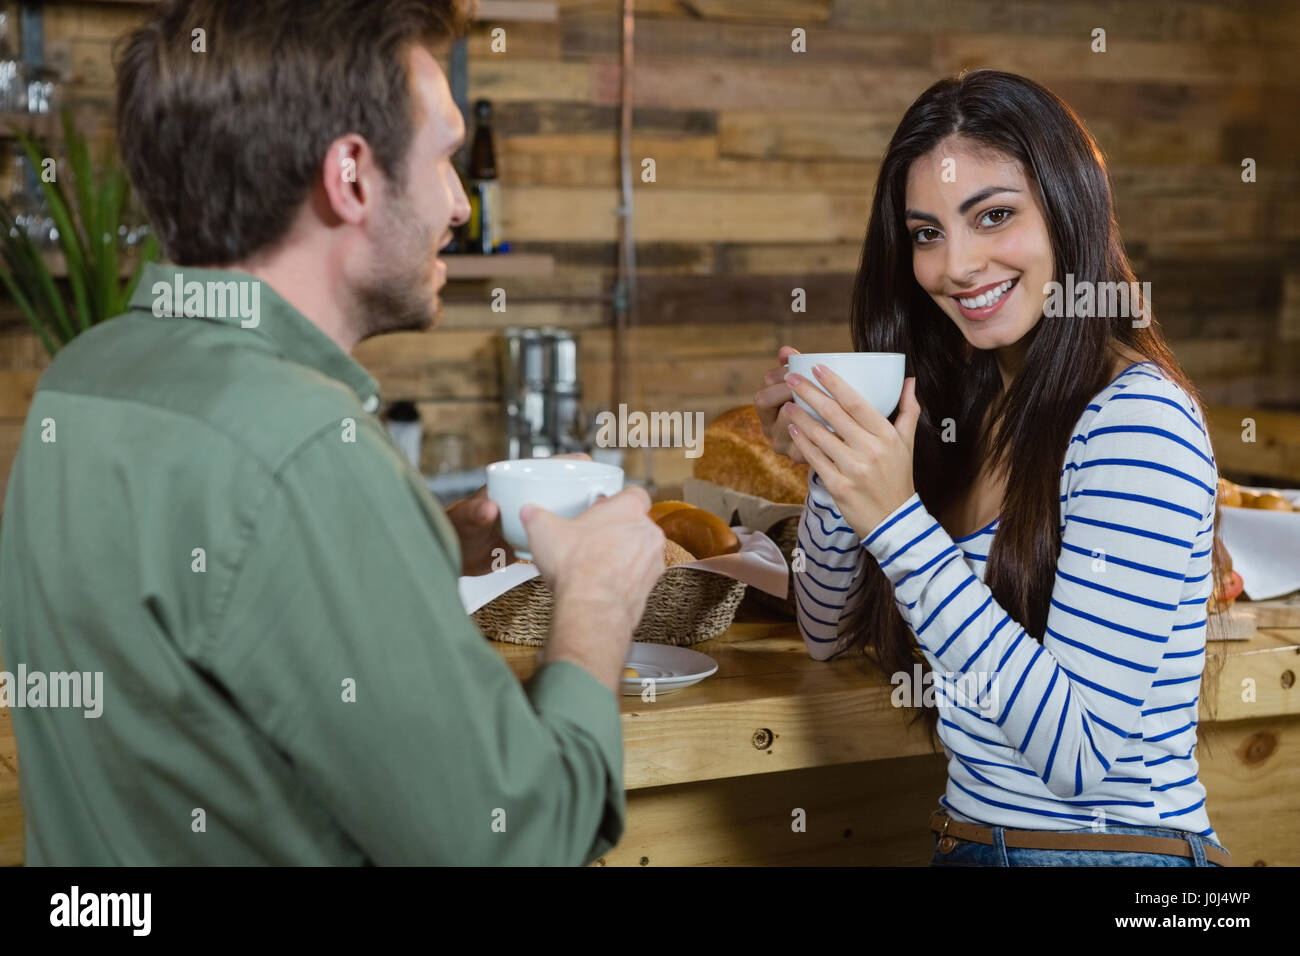 Portrait of woman having coffee at counter in café - Stock Image